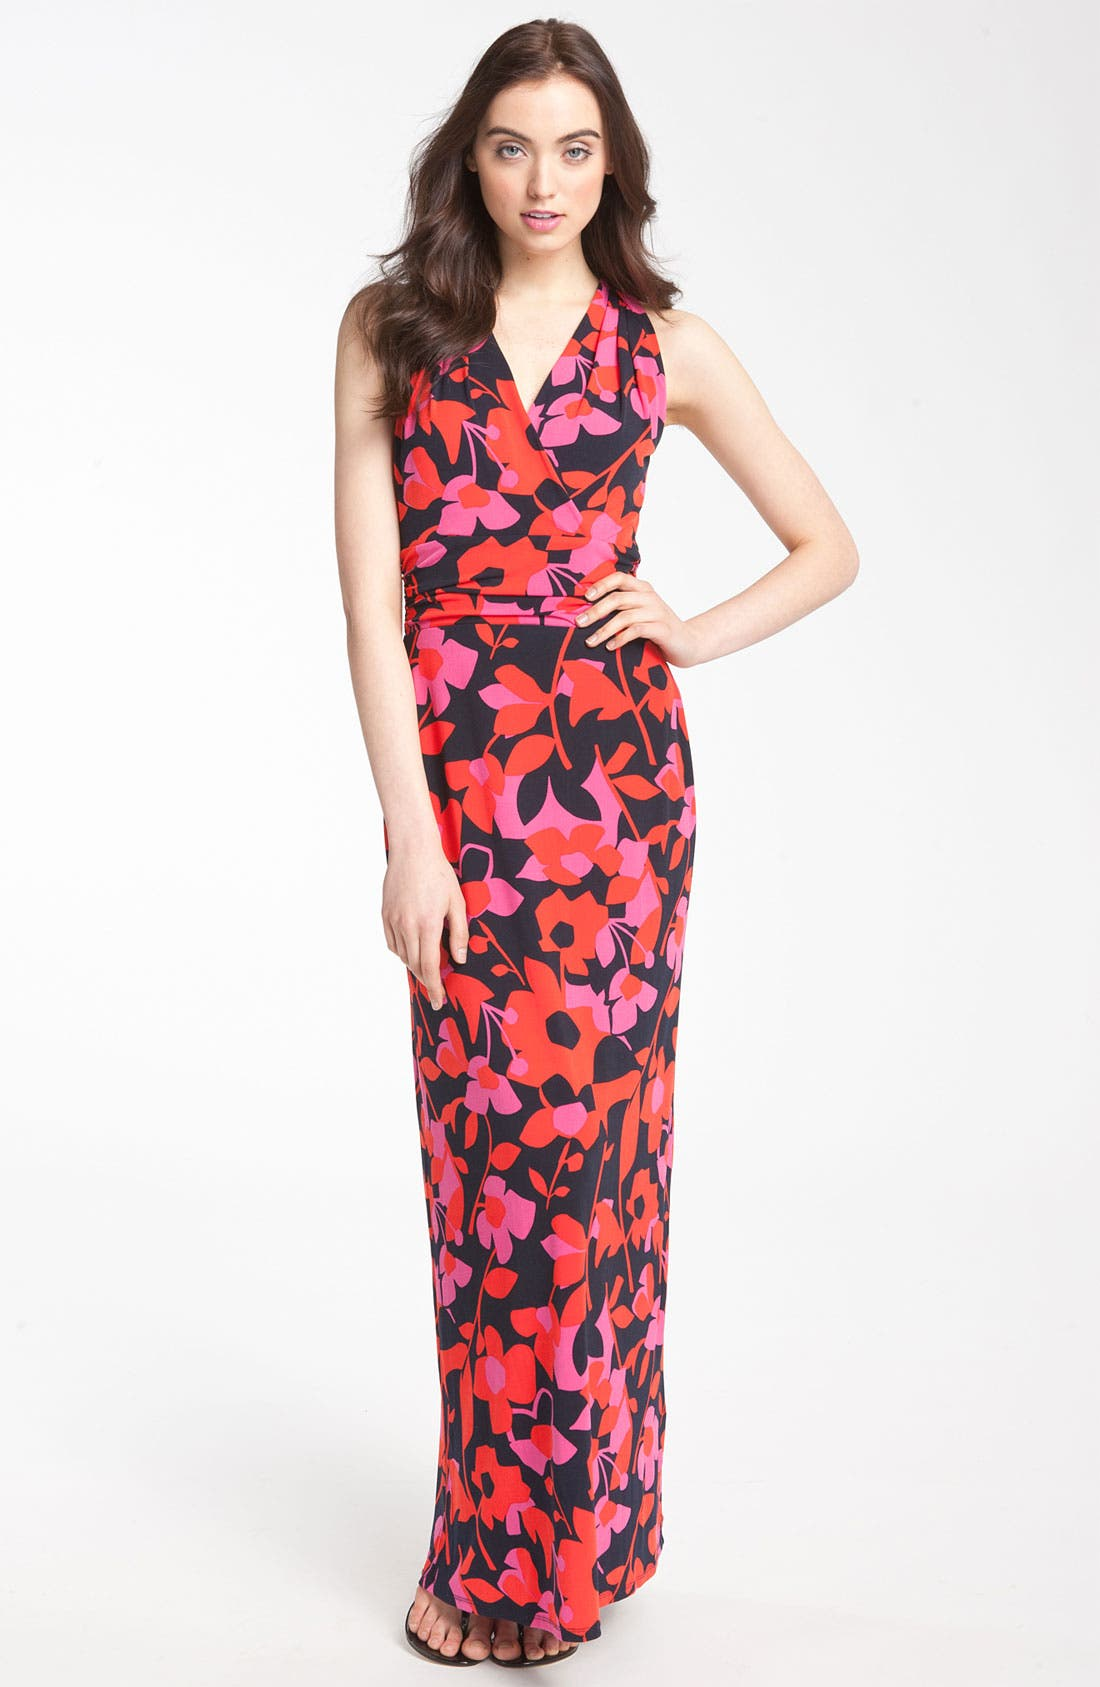 Alternate Image 1 Selected - Vince Camuto 'Island Cutout' Print Maxi Dress